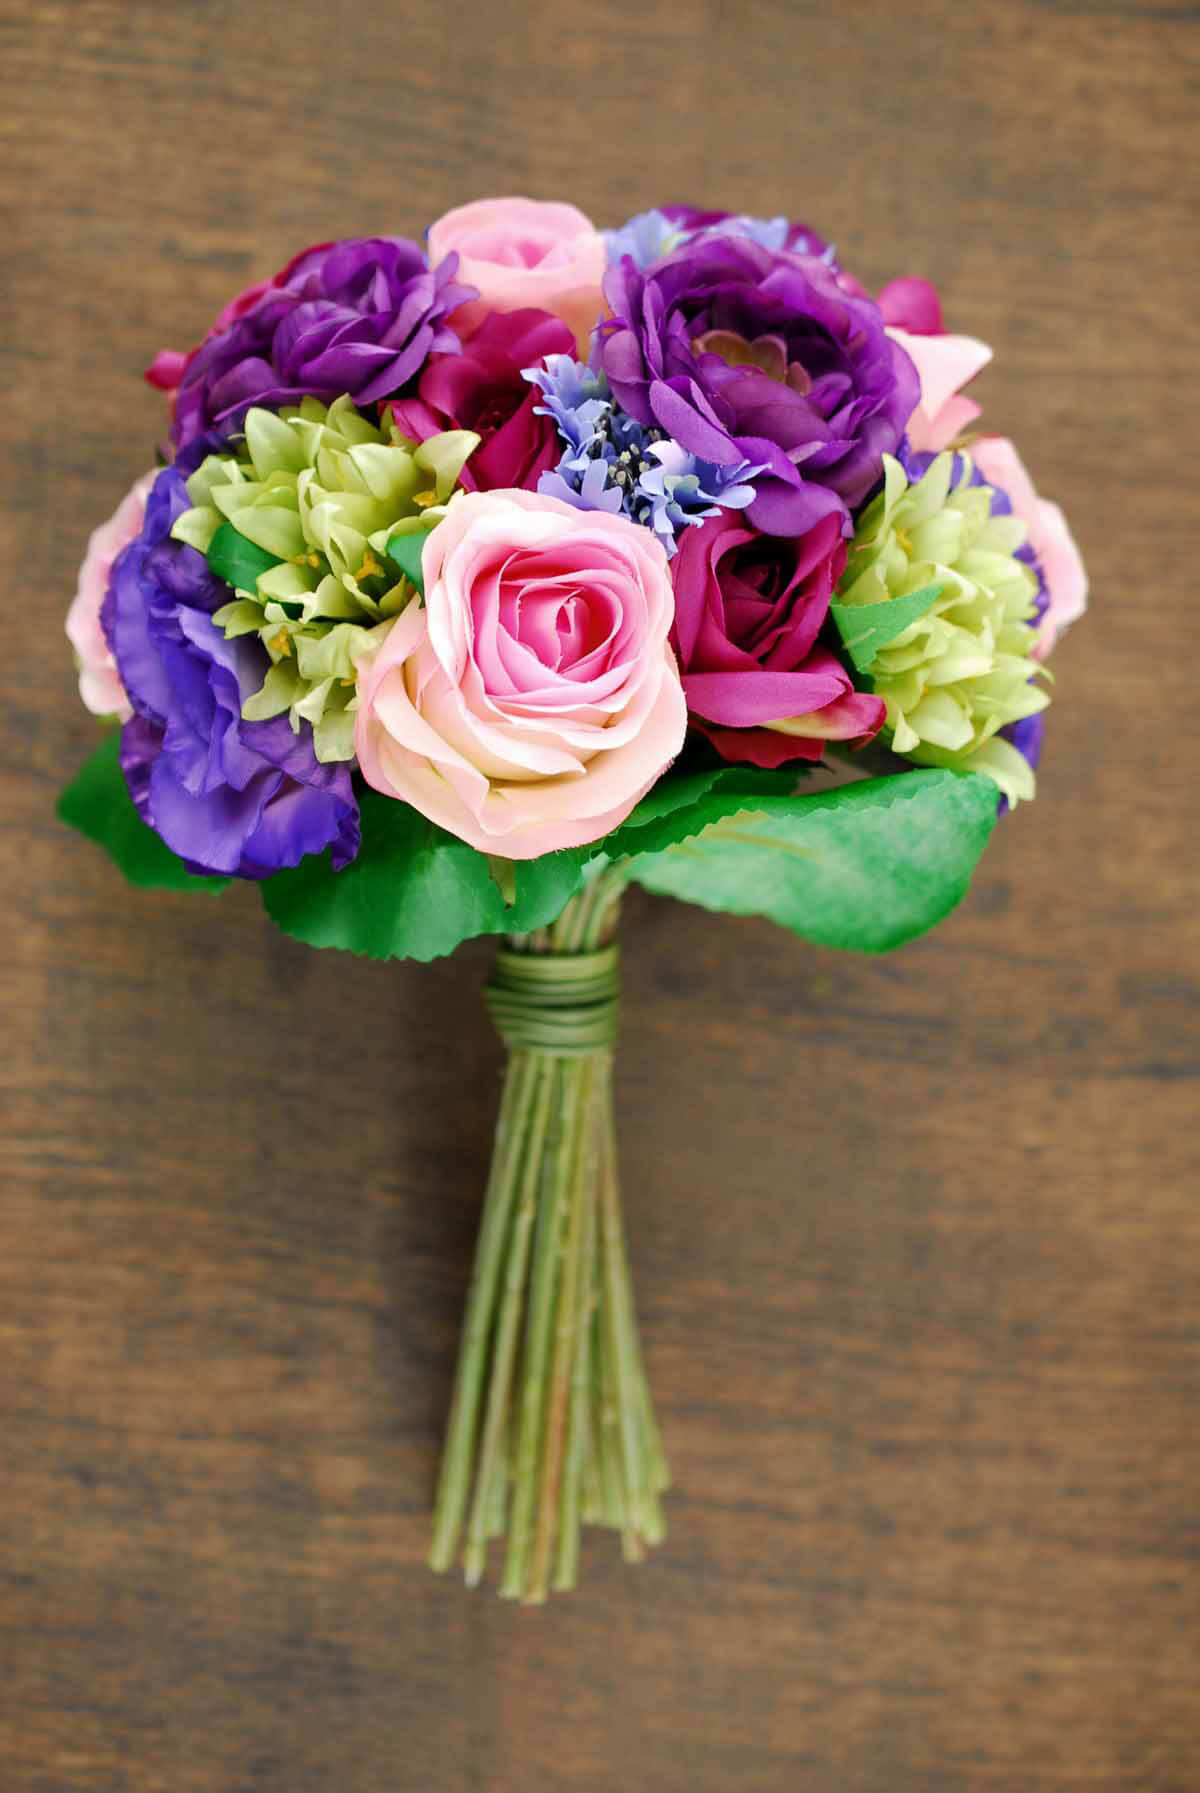 Rose And Lisianthus Bouquet 11 5in